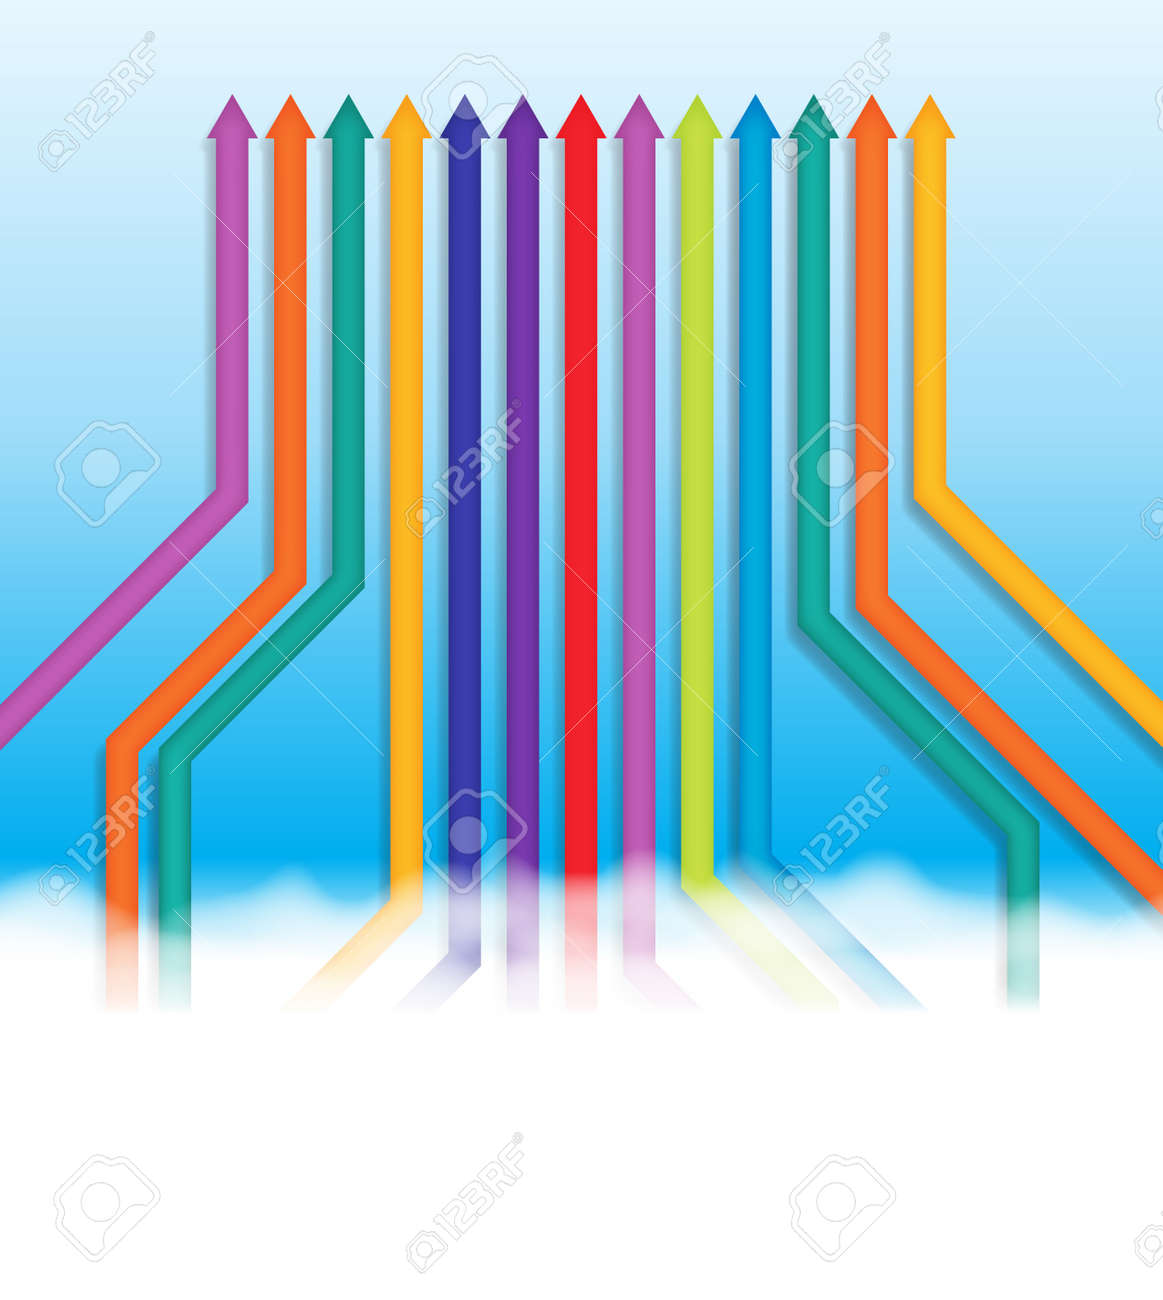 abstract illustration of colorful lines going into the same one direction. Stock Vector - 17747015